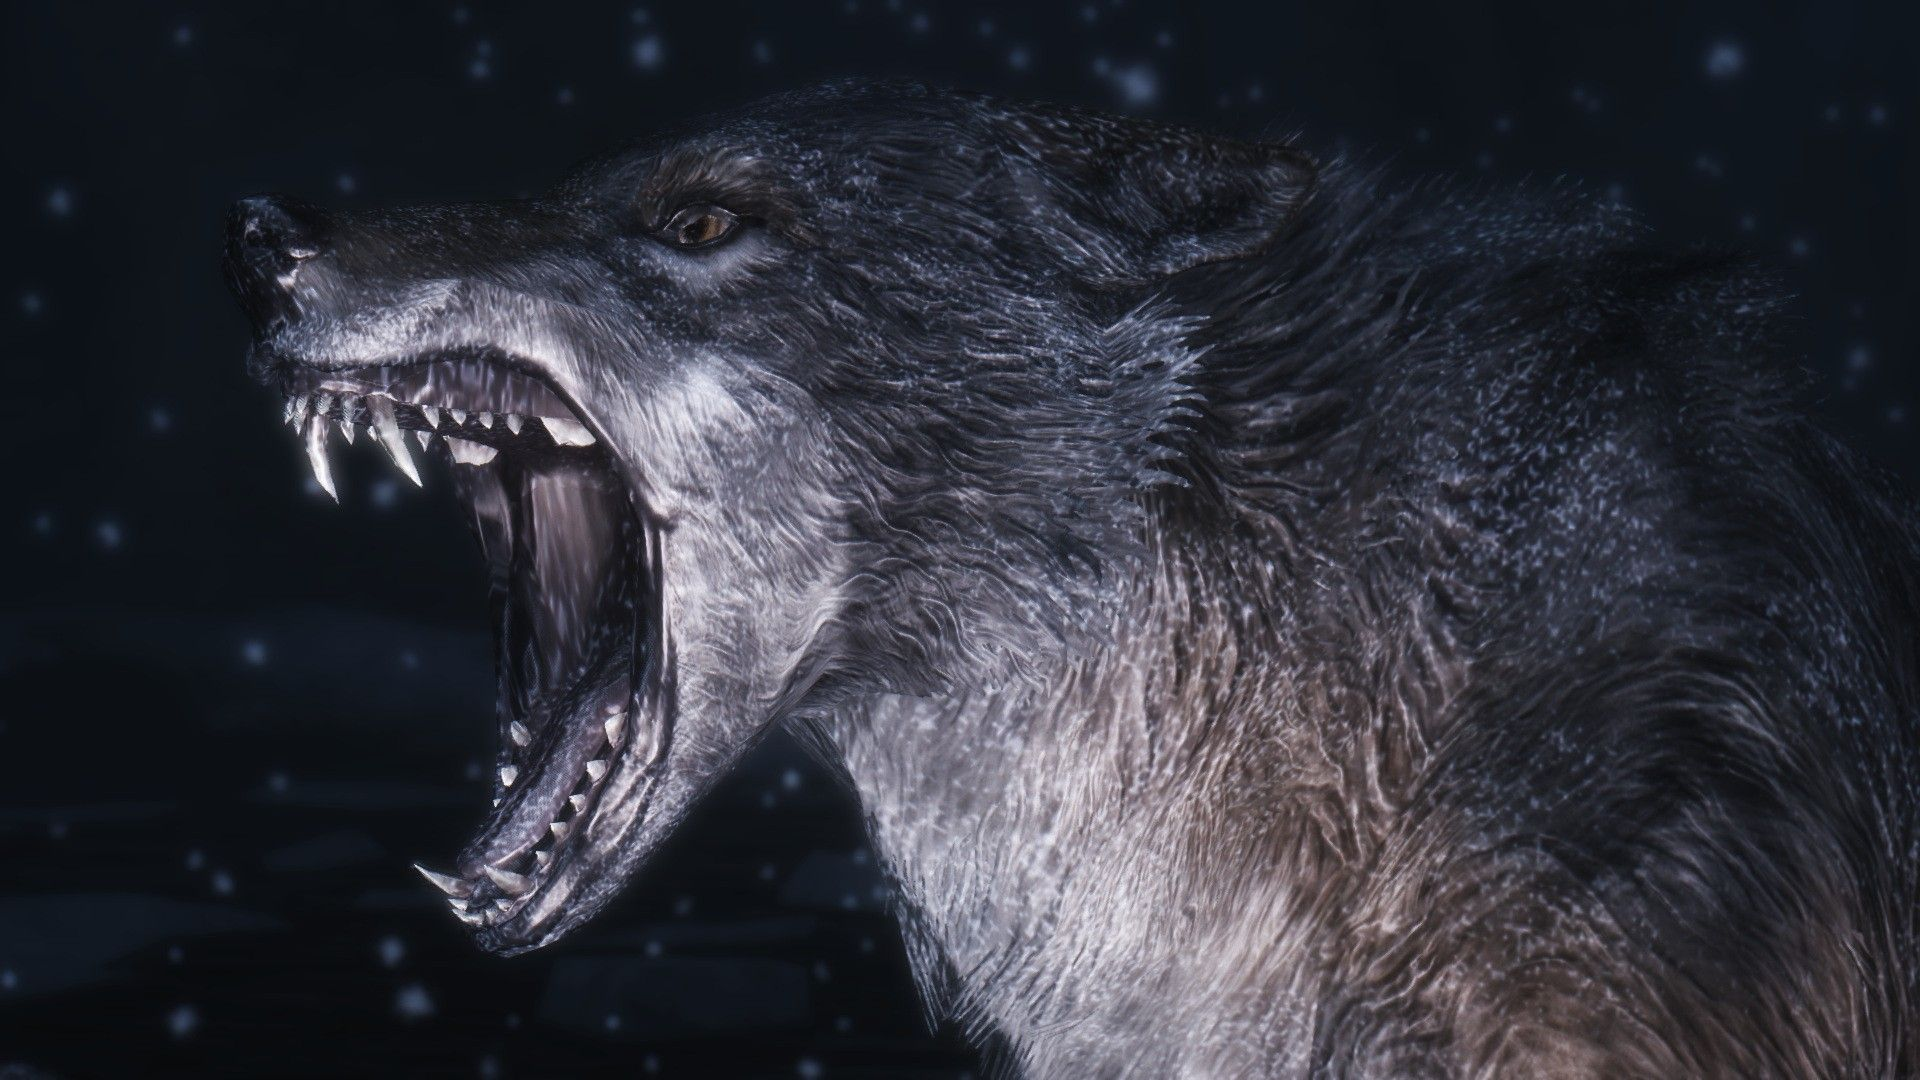 Hd wallpaper wolf - Find This Pin And More On Hd Wallpapers Nice Where Wolf Wallpaper